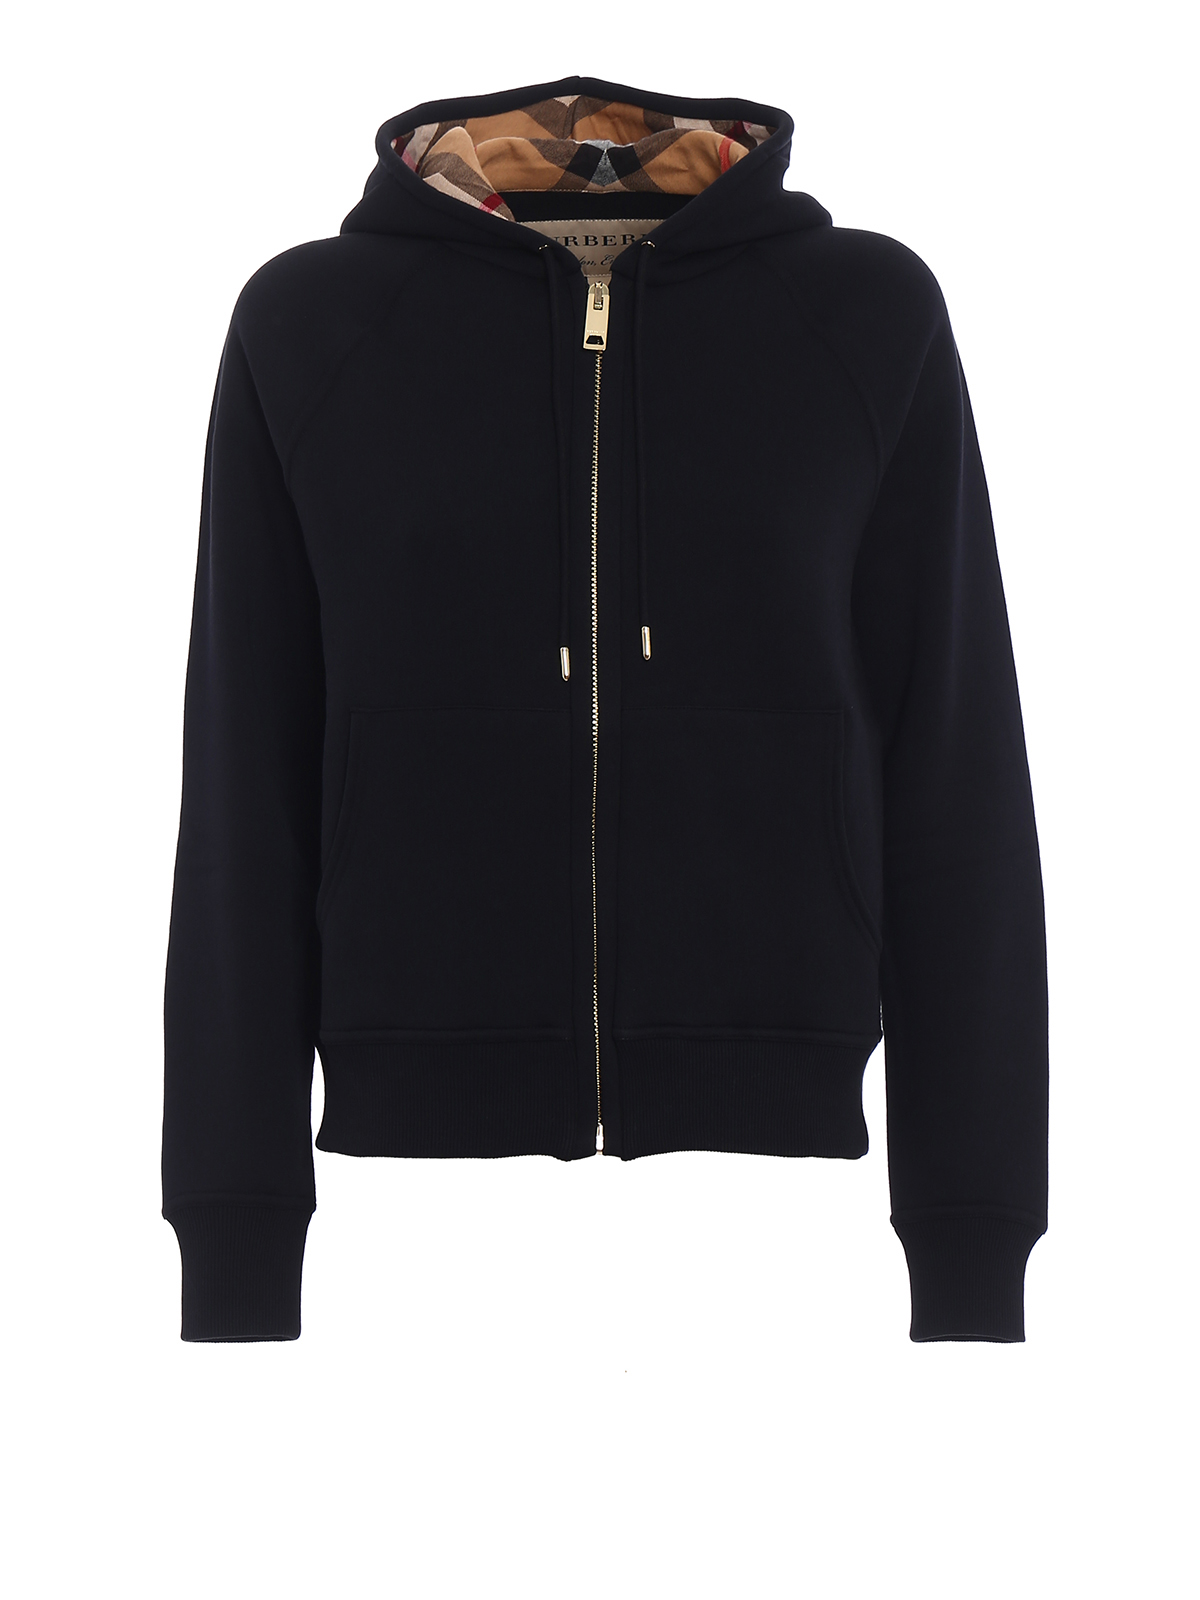 2b2fec54f9d8 Burberry - Lined front black cotton hoodie - Sweatshirts   Sweaters ...